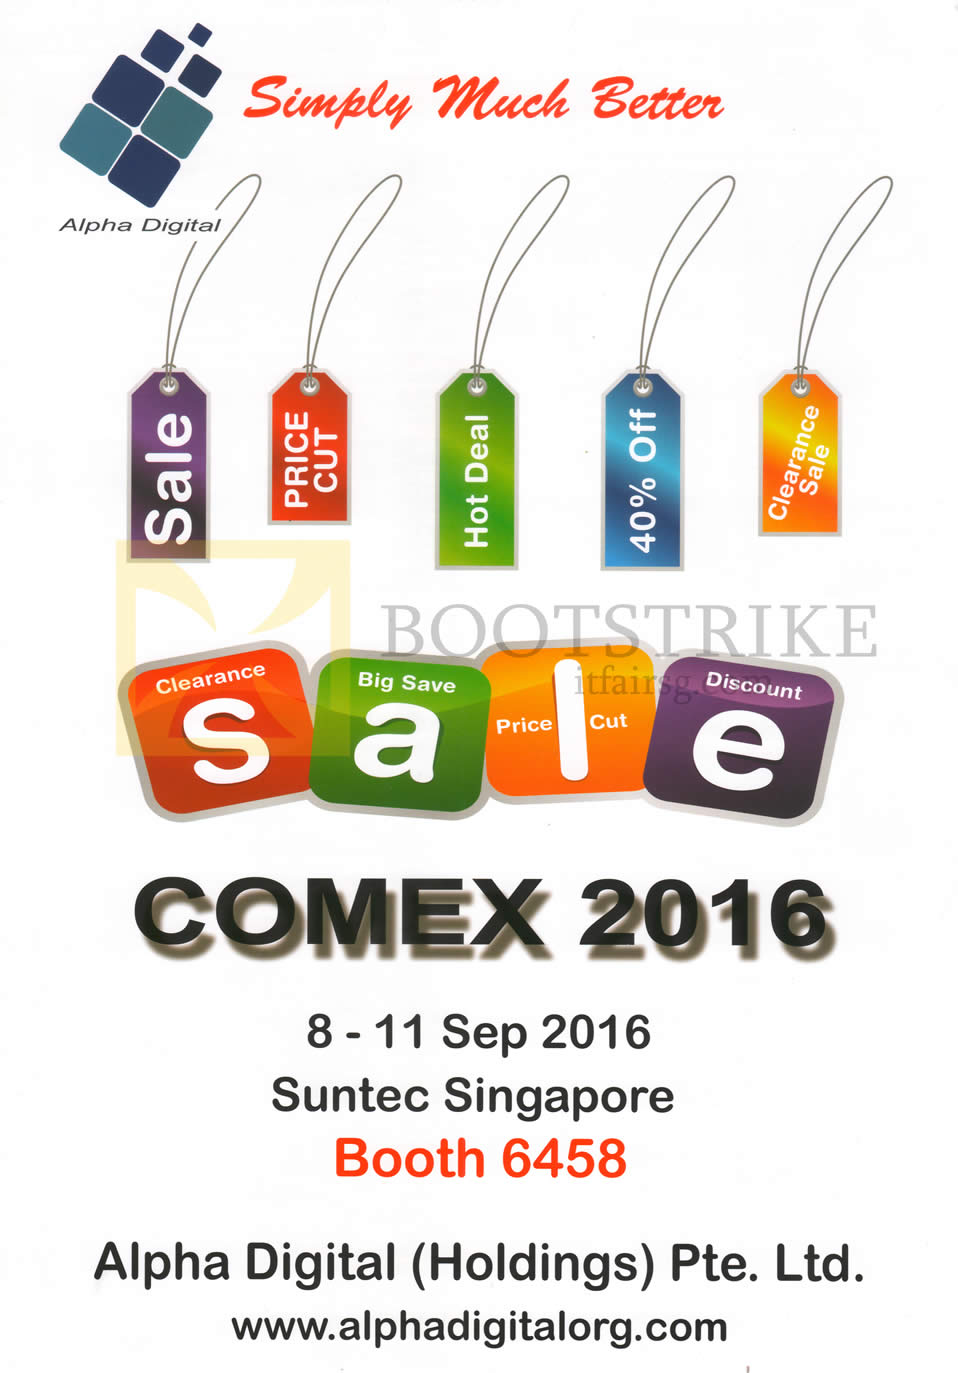 COMEX 2016 price list image brochure of Alpha Digital Holdings Comex Sale